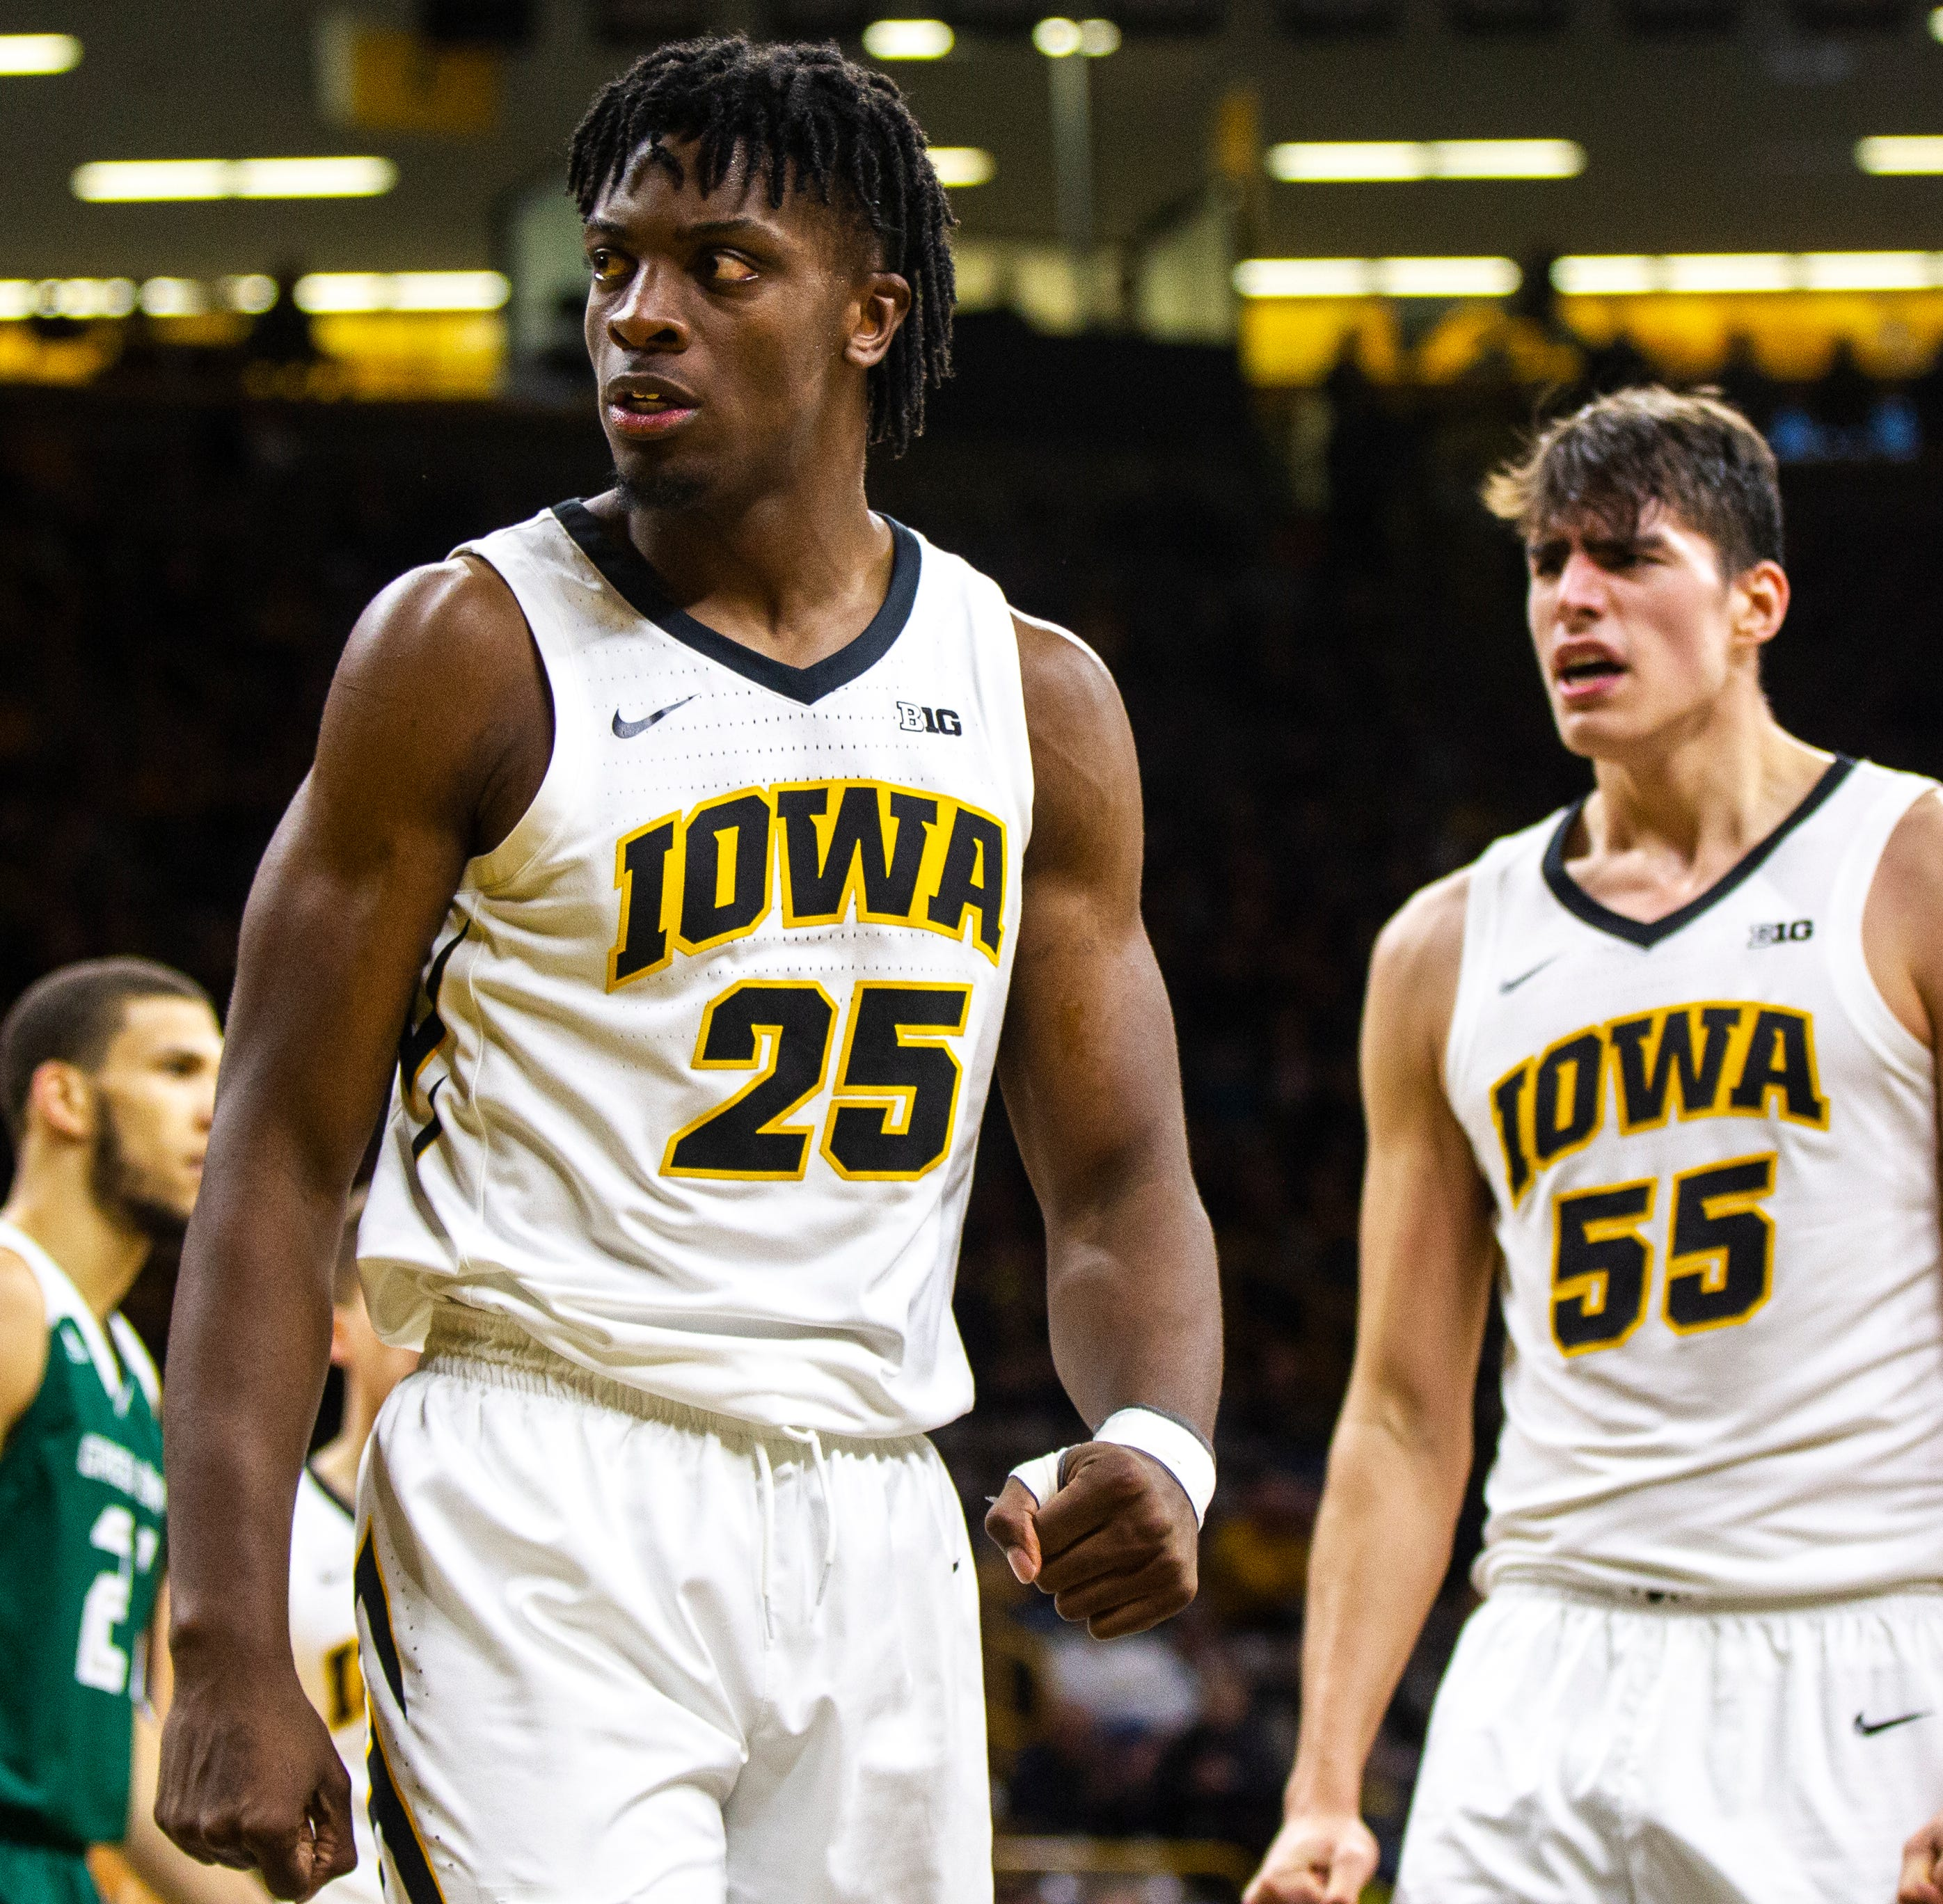 Cook's dunk and glare sends a message in Iowa win over Green Bay